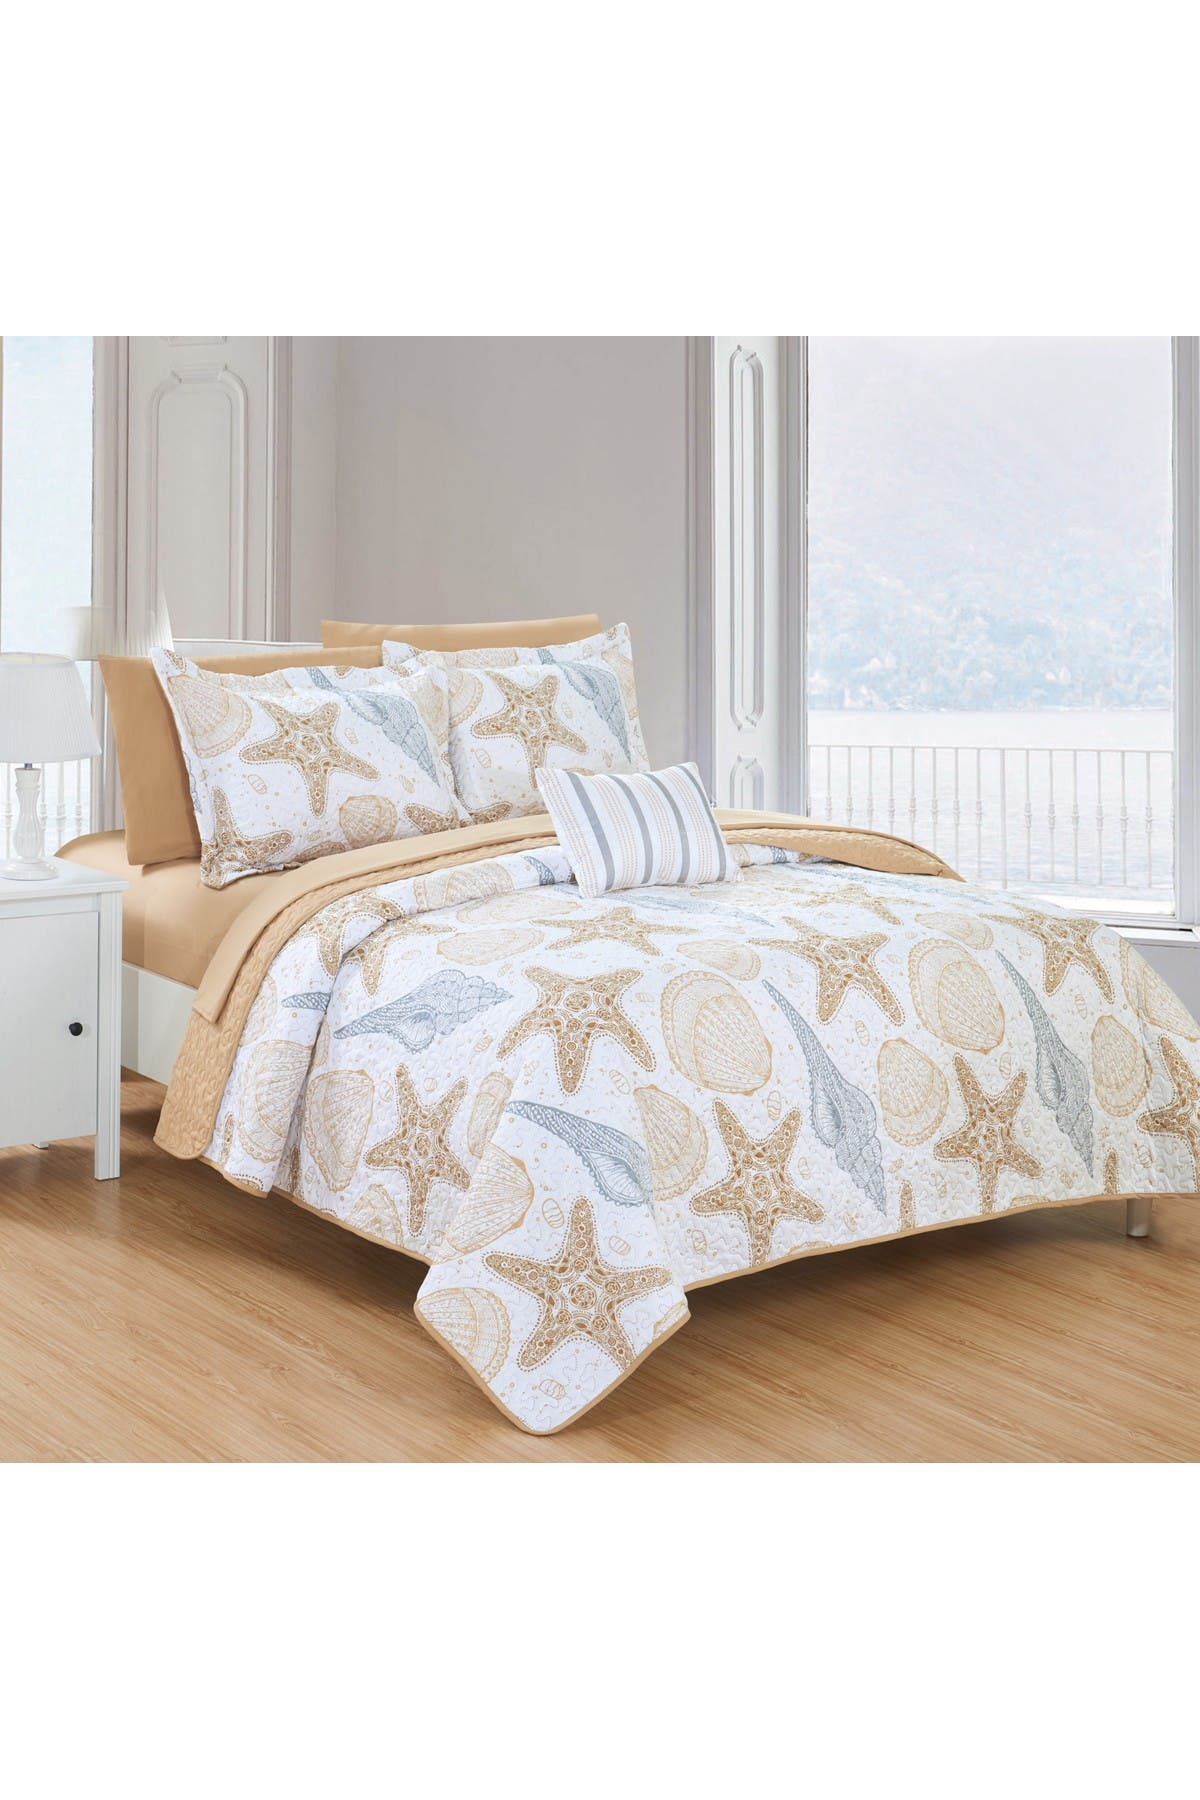 Image of Chic Home Bedding Queen Gaetan Reversible Maritime Theme Embossed Quilt Set - Multi Color